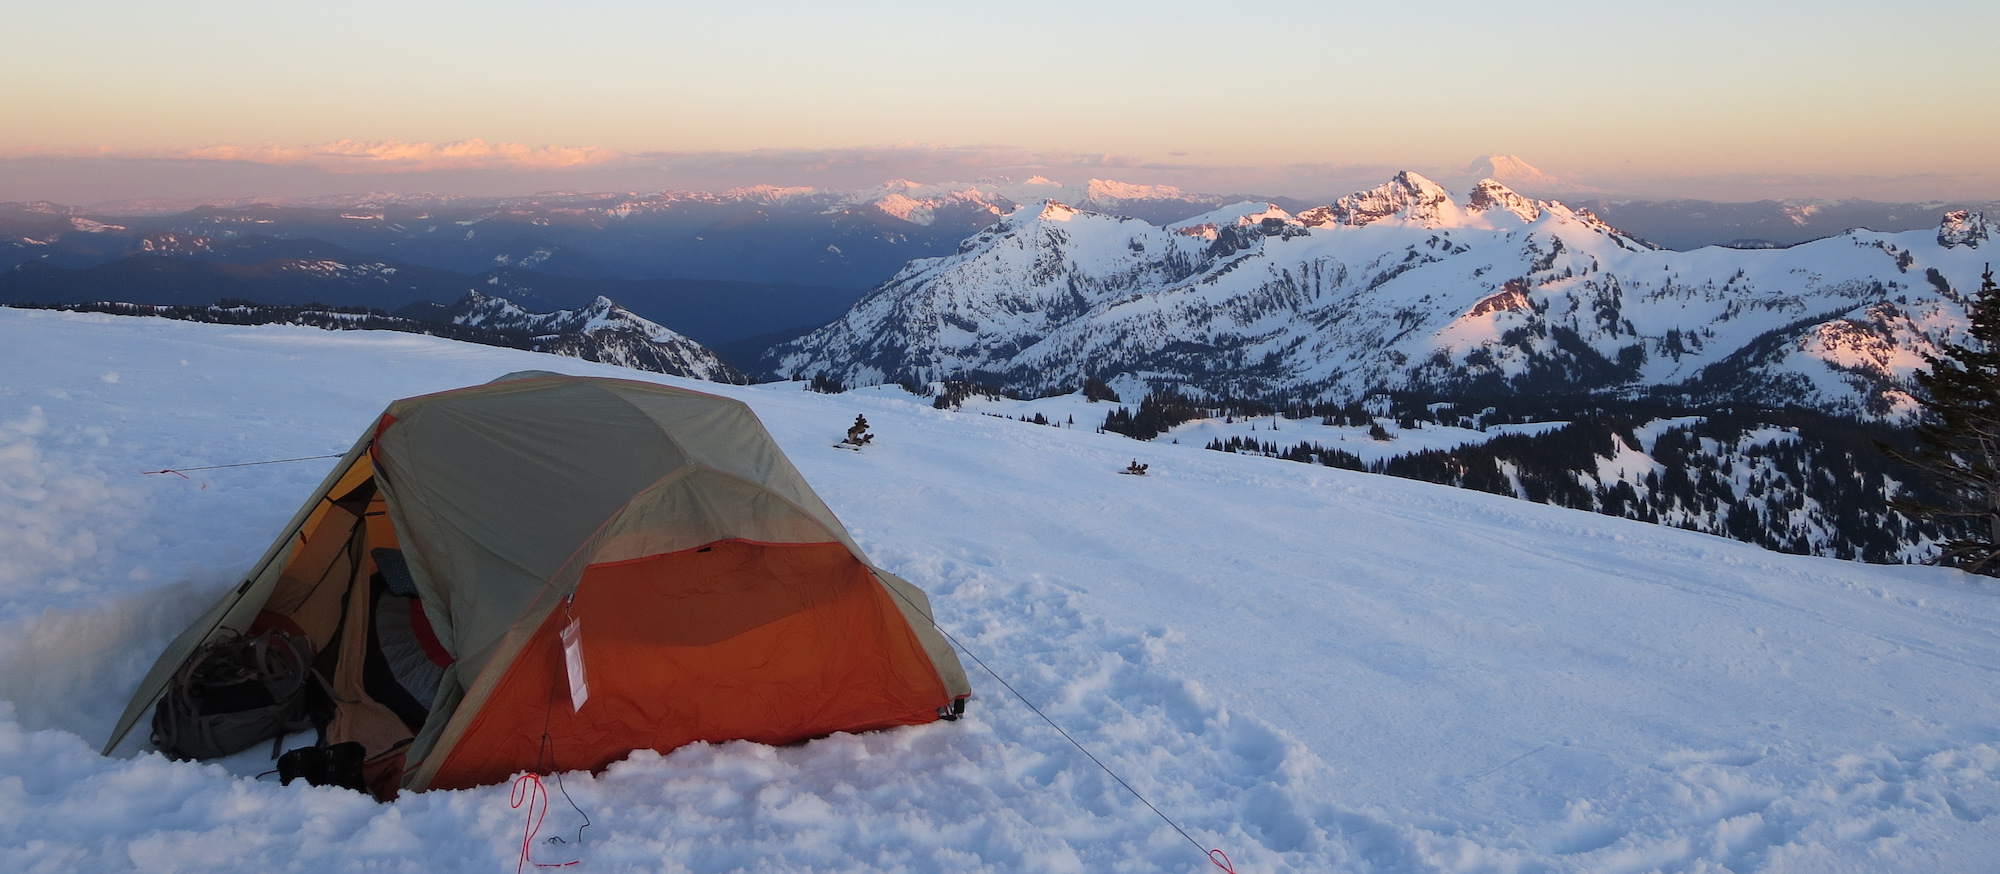 Tent on snow at sunset with snow-covered mountains in the background.